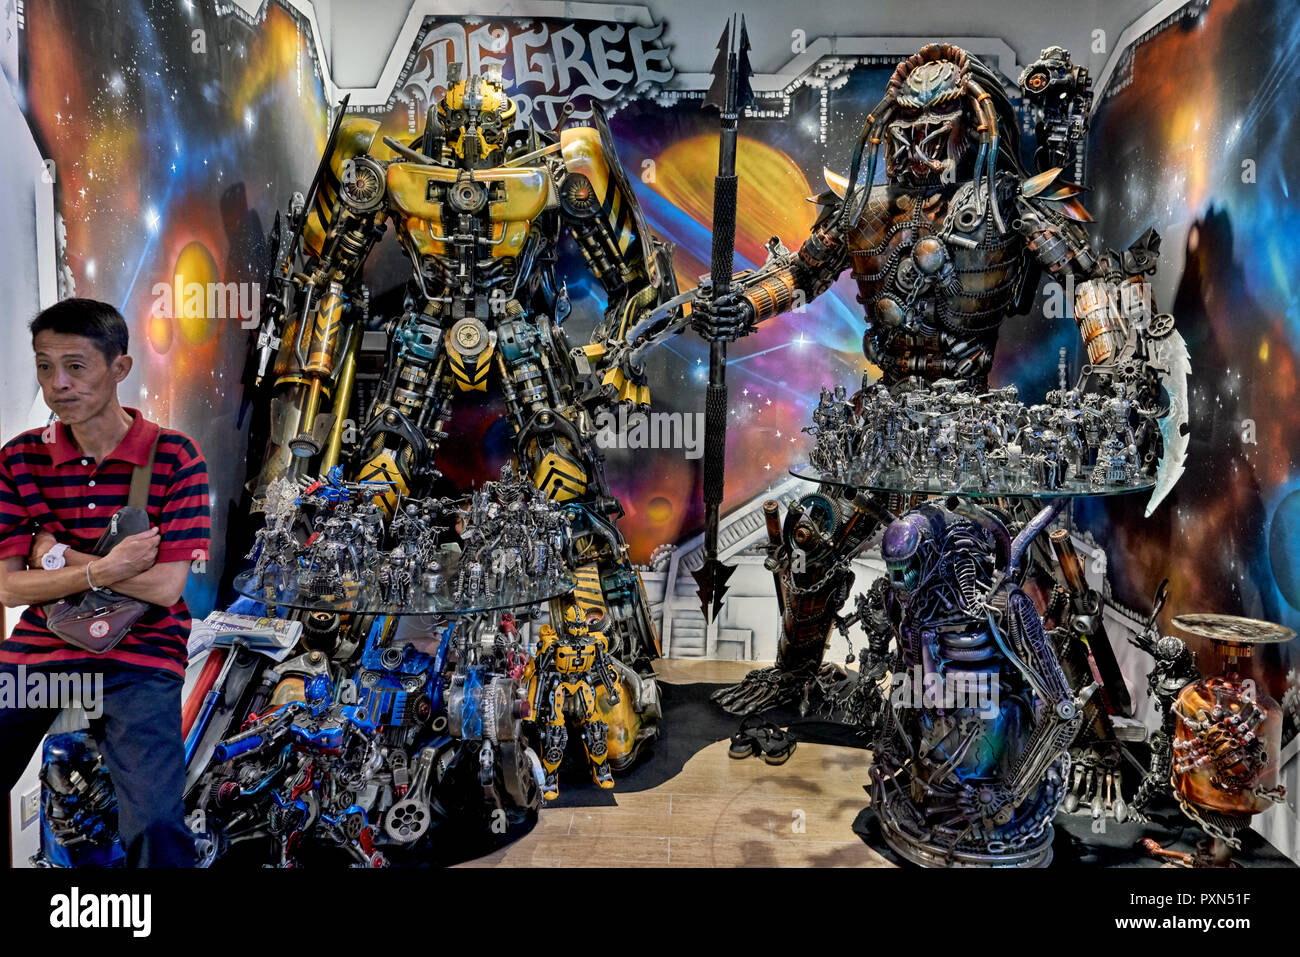 Thailand vendor selling large scale models of Transformer and Alien figures - Stock Image